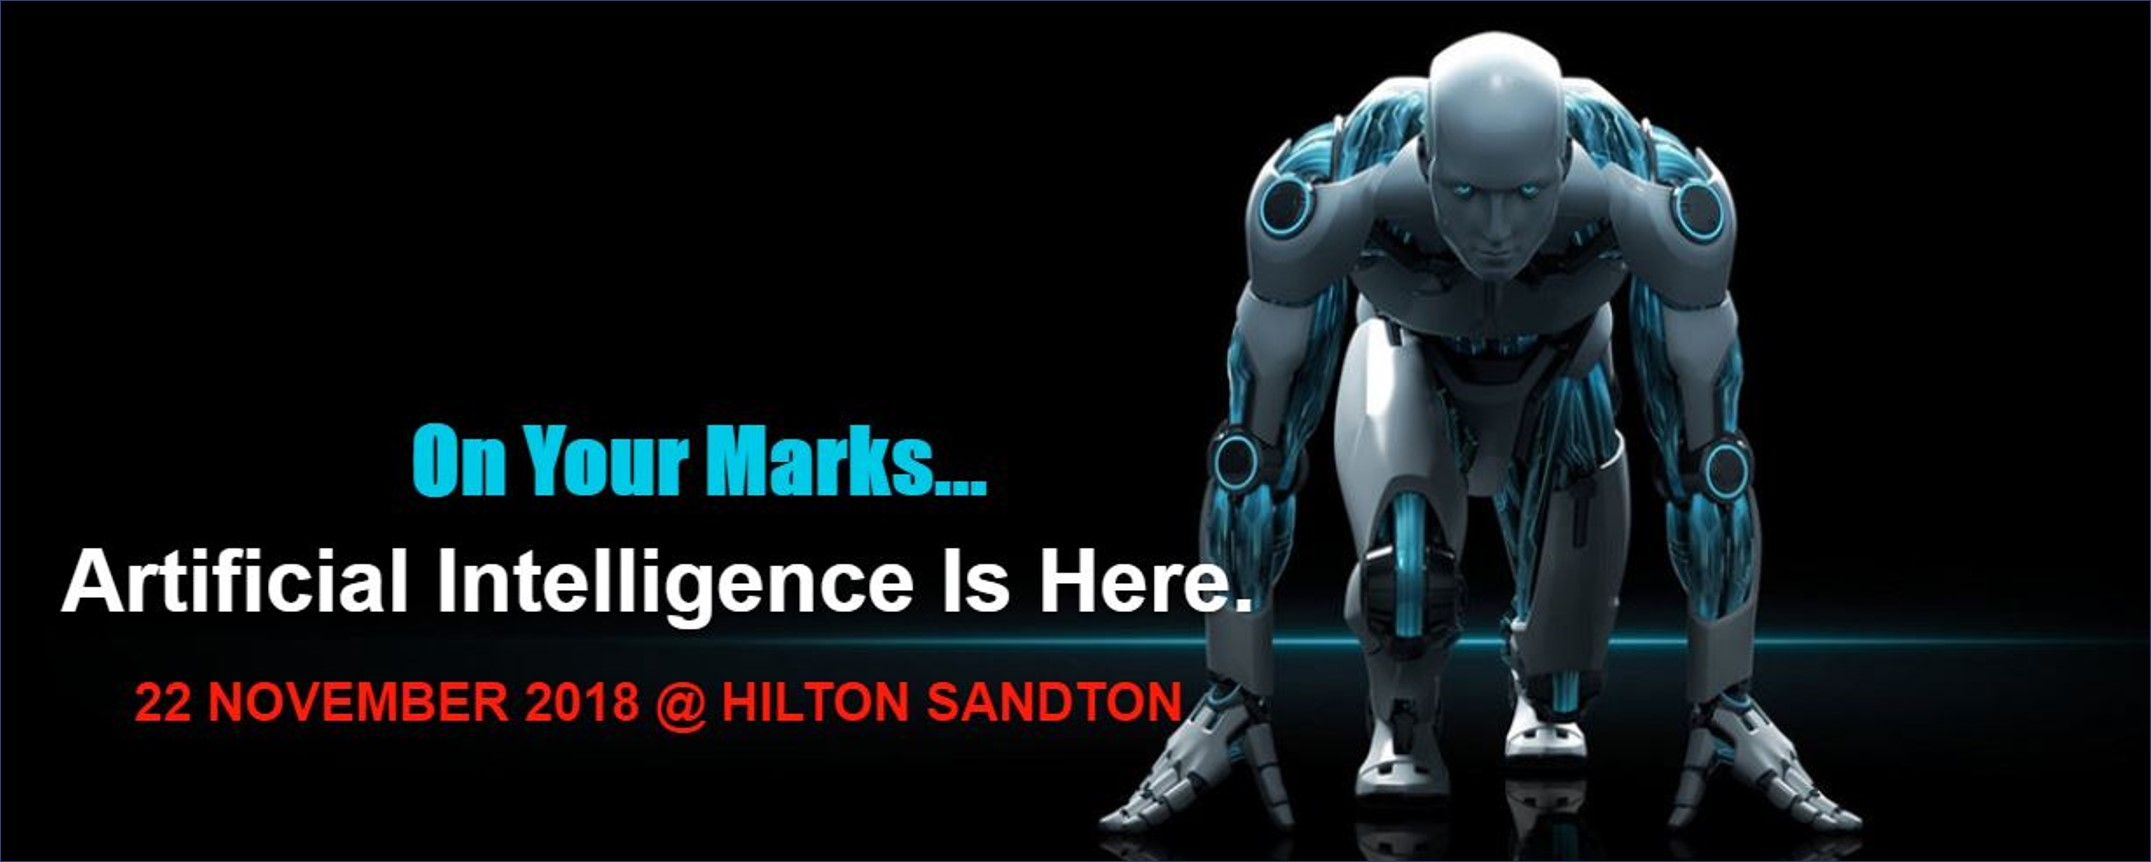 Artificial Intelligence - Artificial Intelligence Business Conference 2018 Movemeback African event cover image